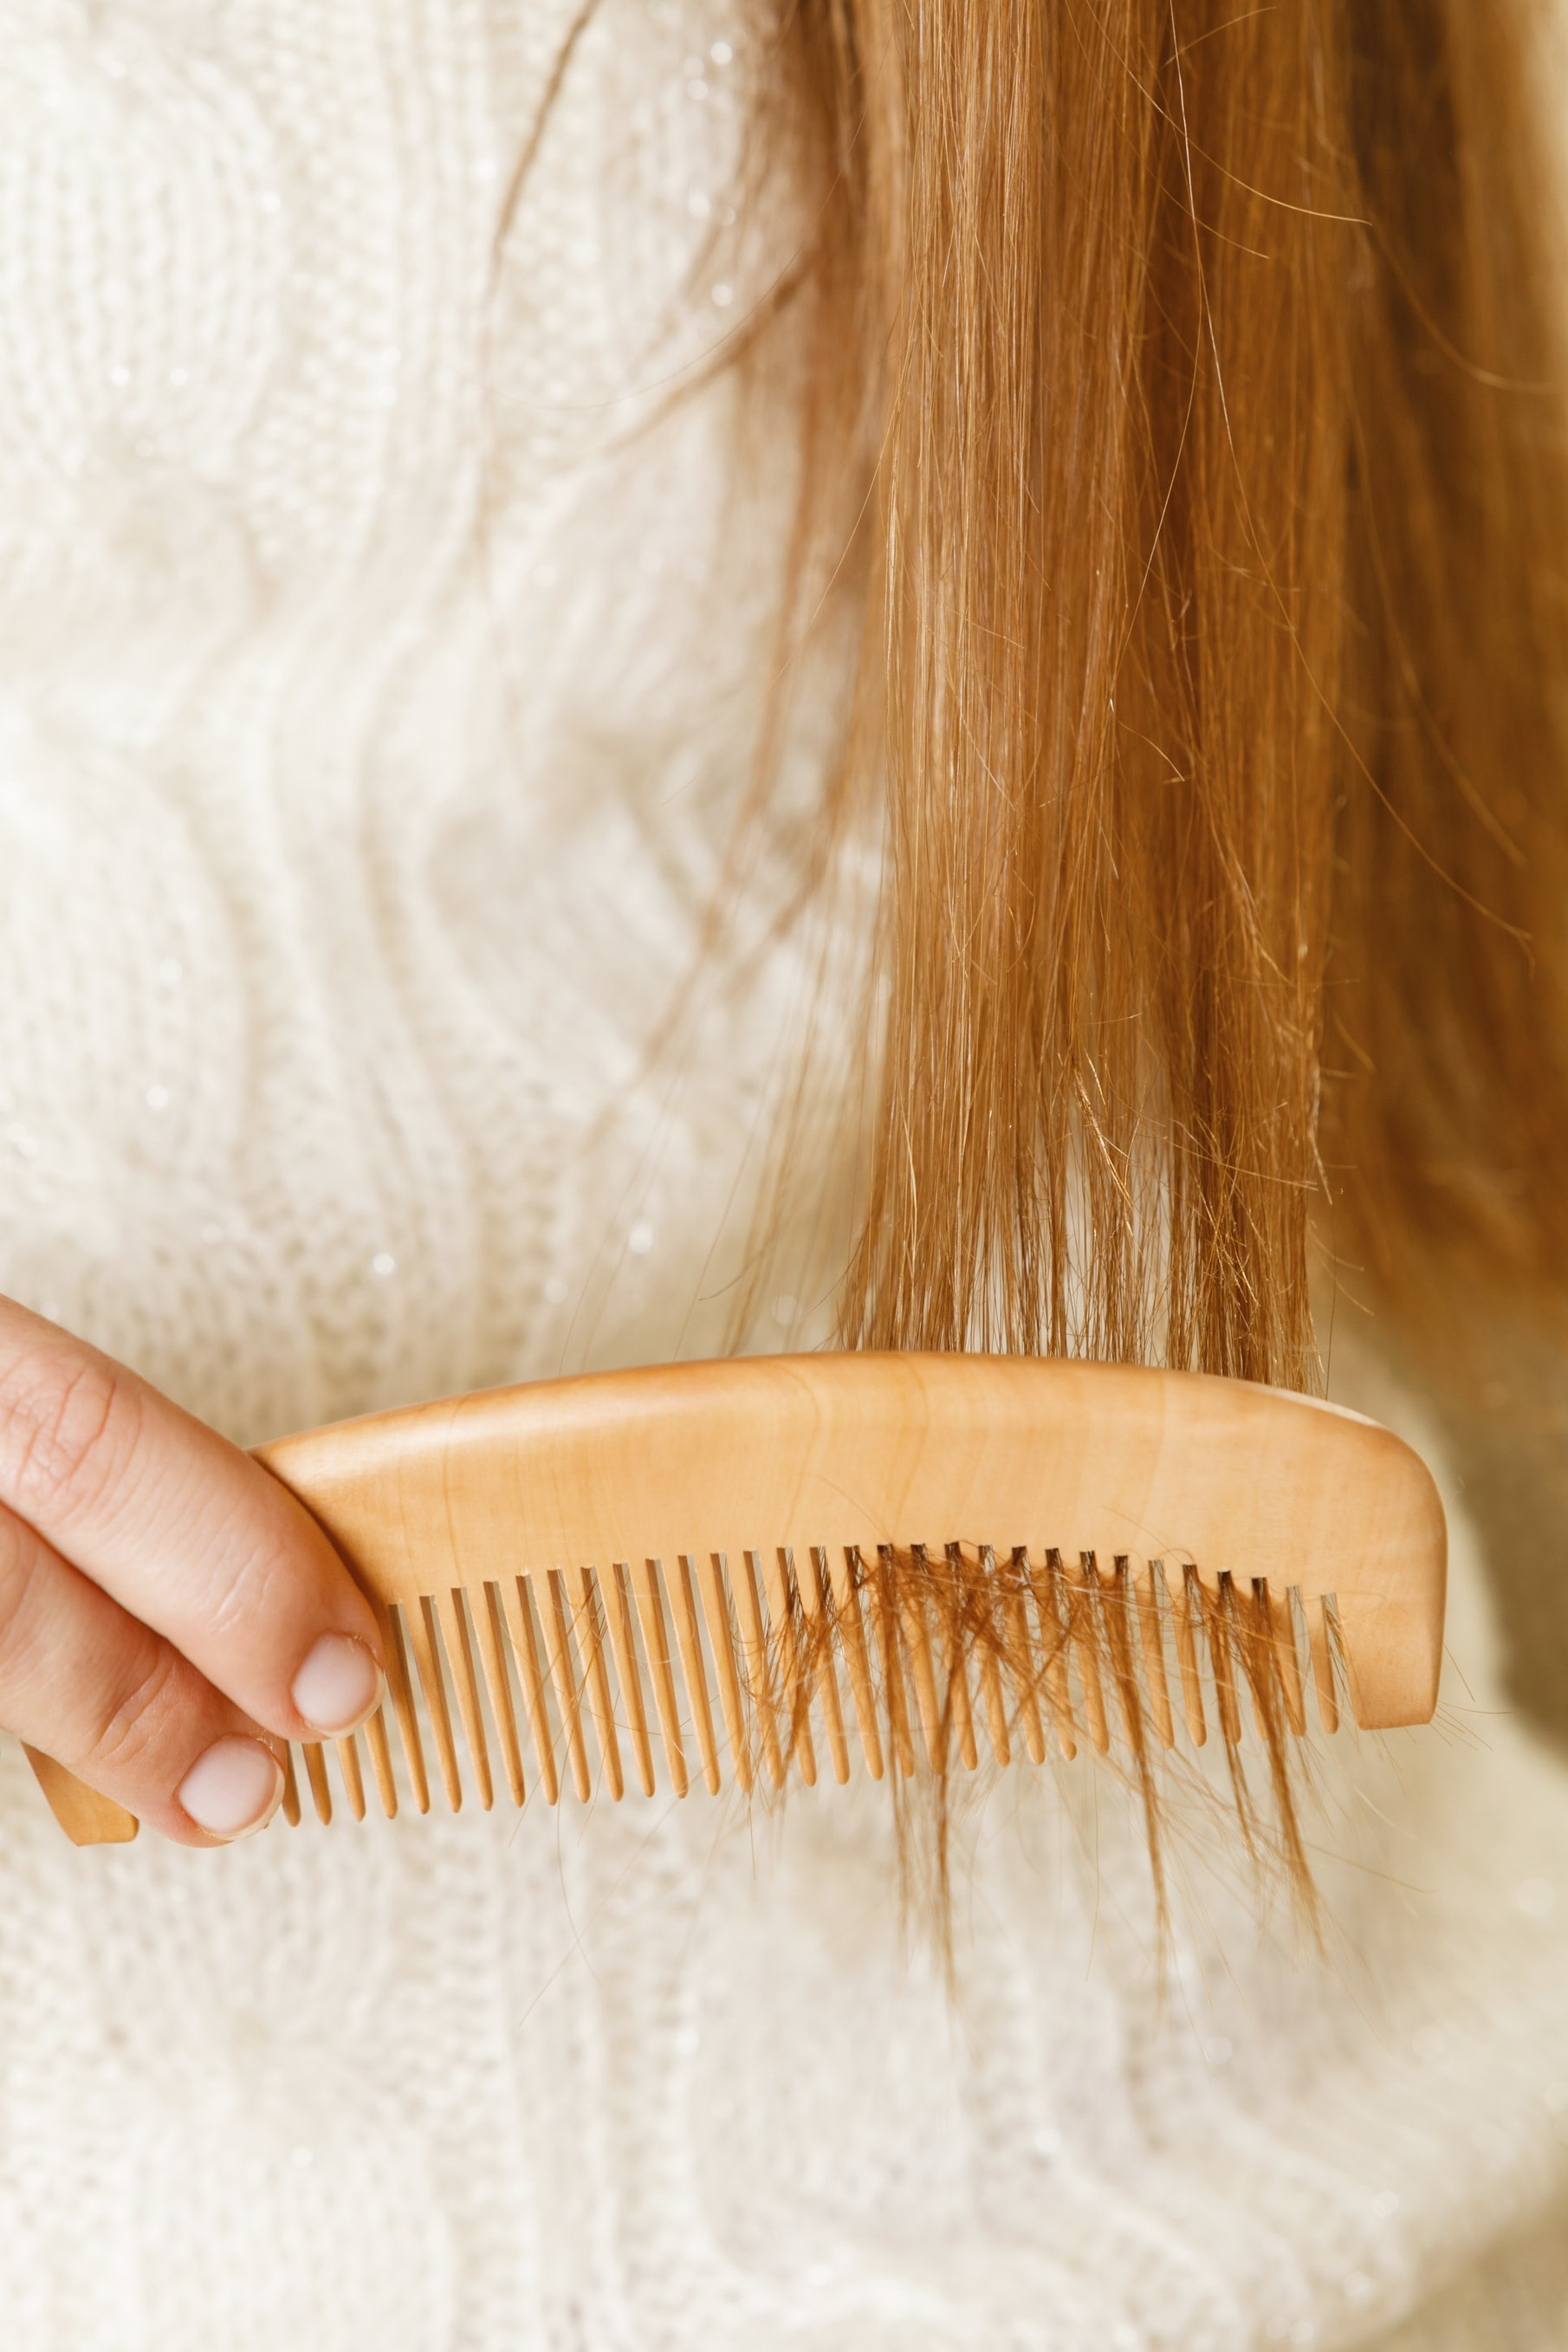 how to fix split ends without cutting black hair